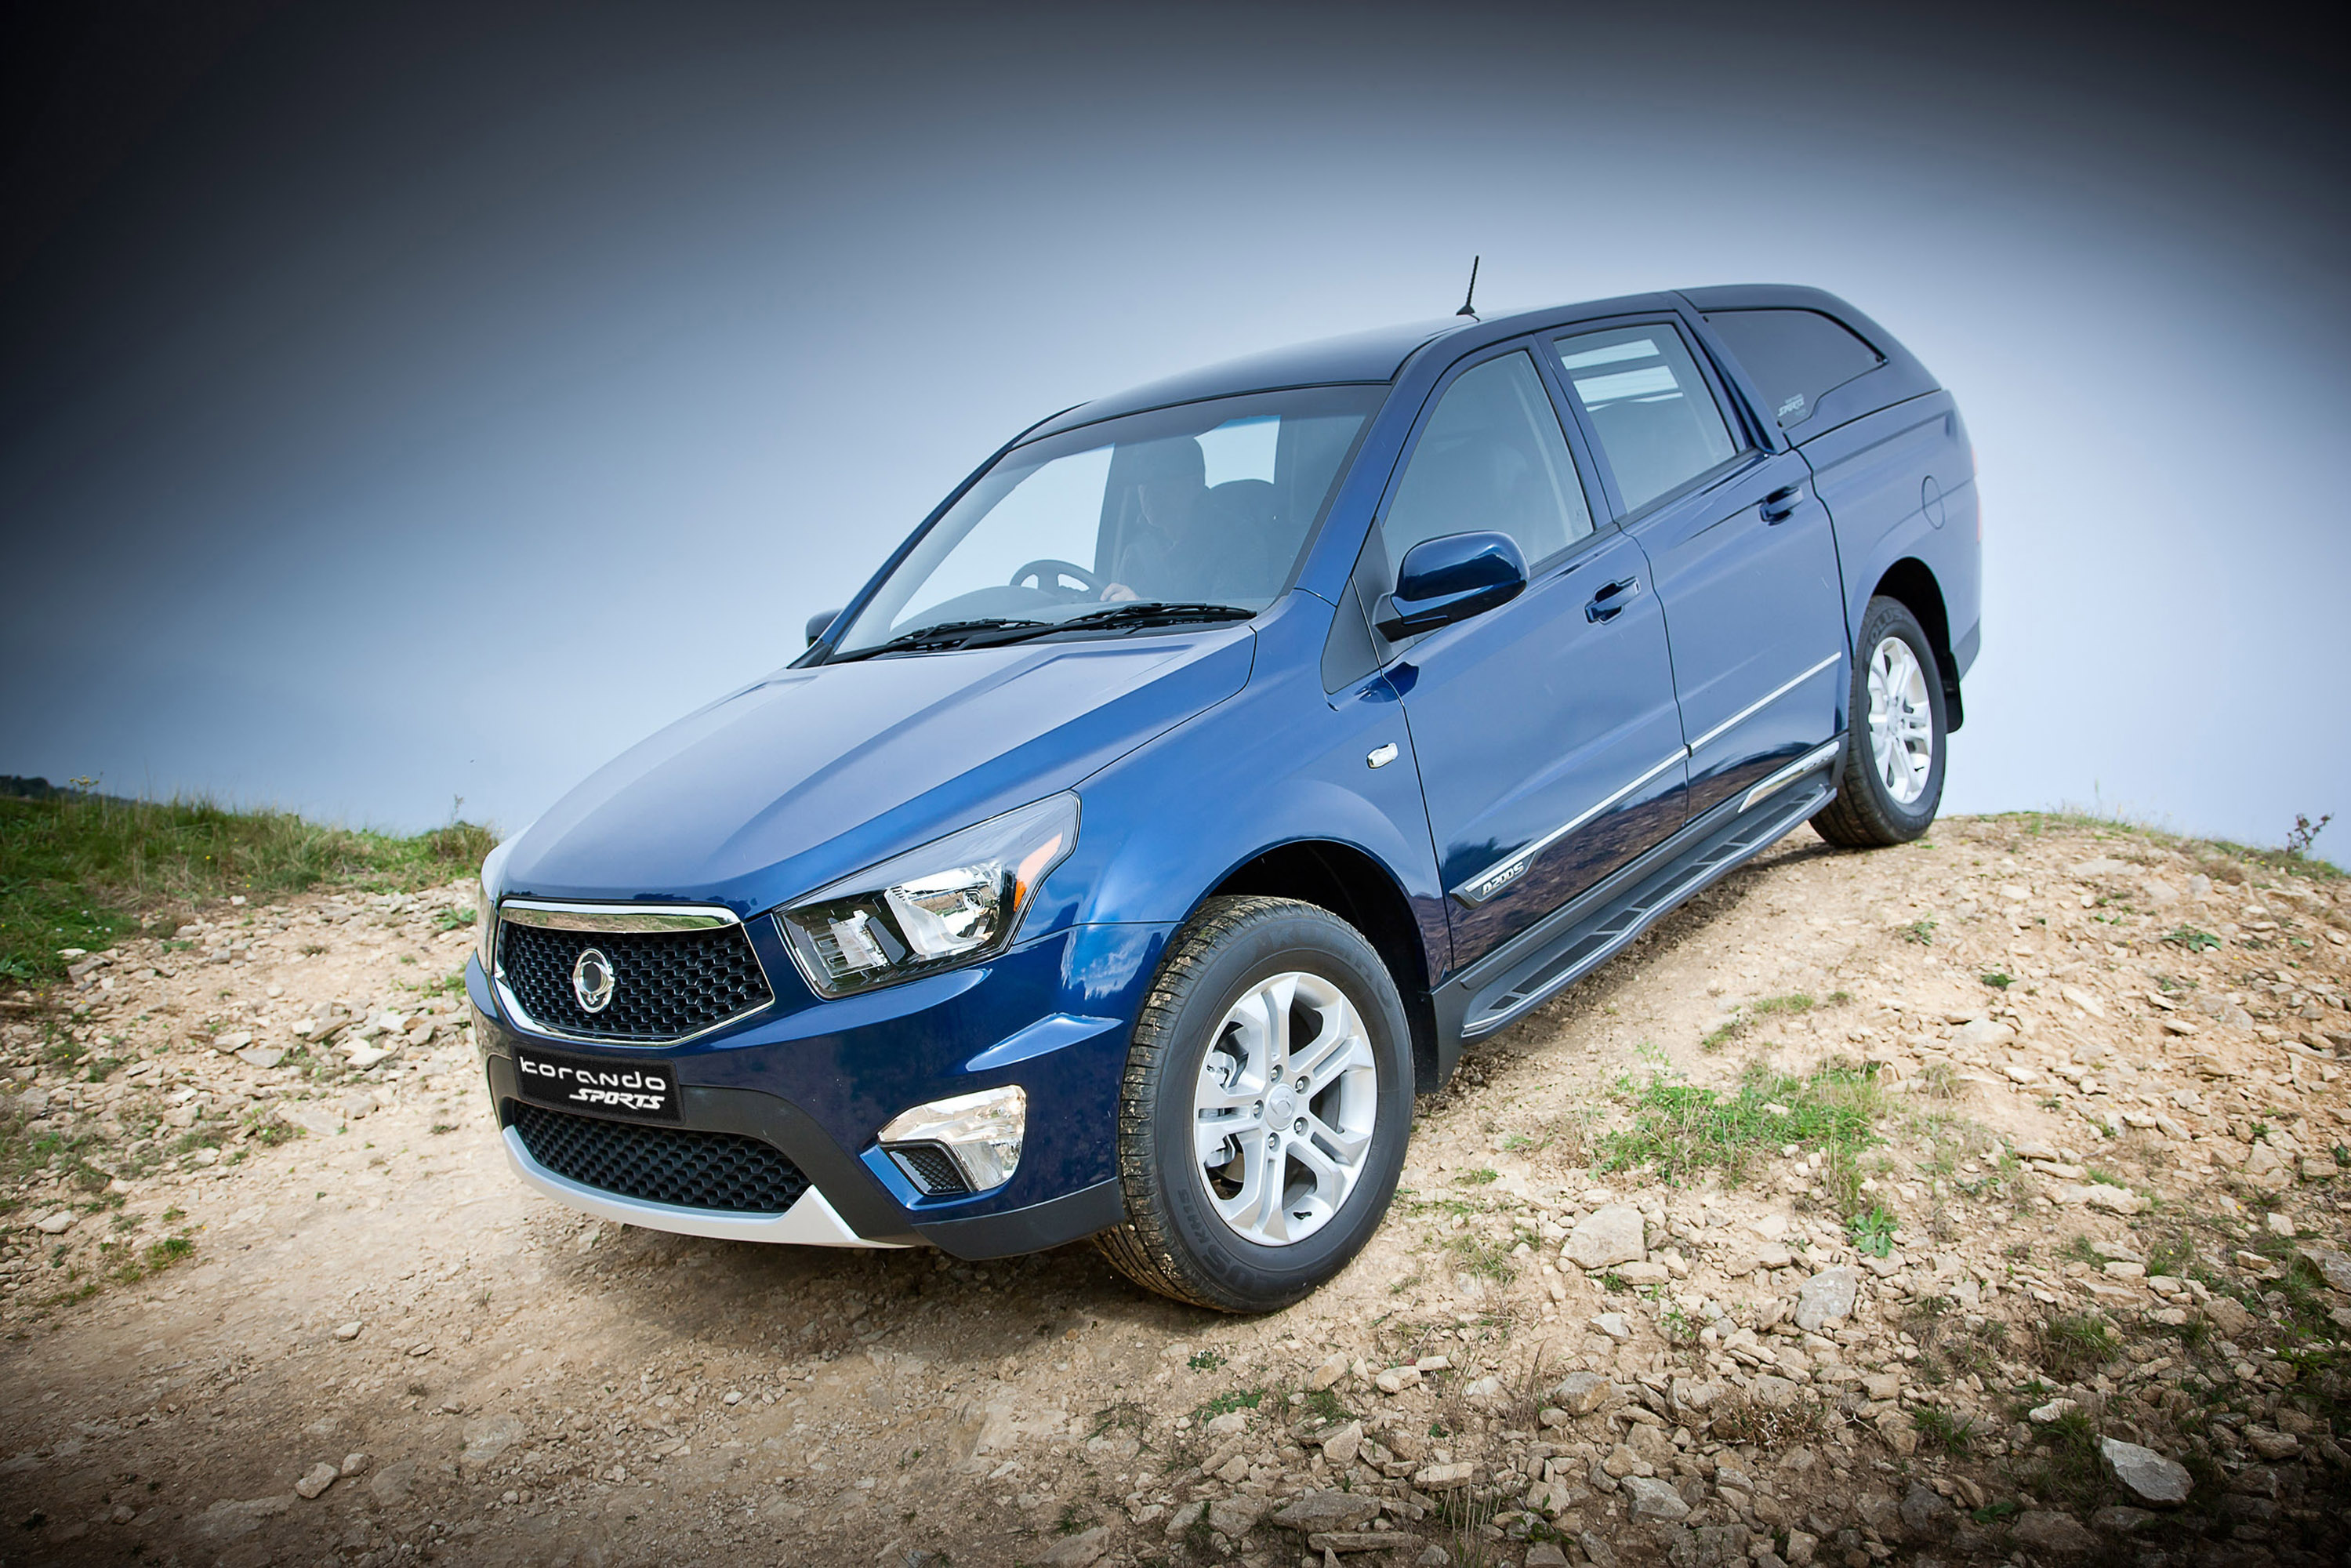 2013 Ssangyong Korando Sports Pick Up Price 163 18 295